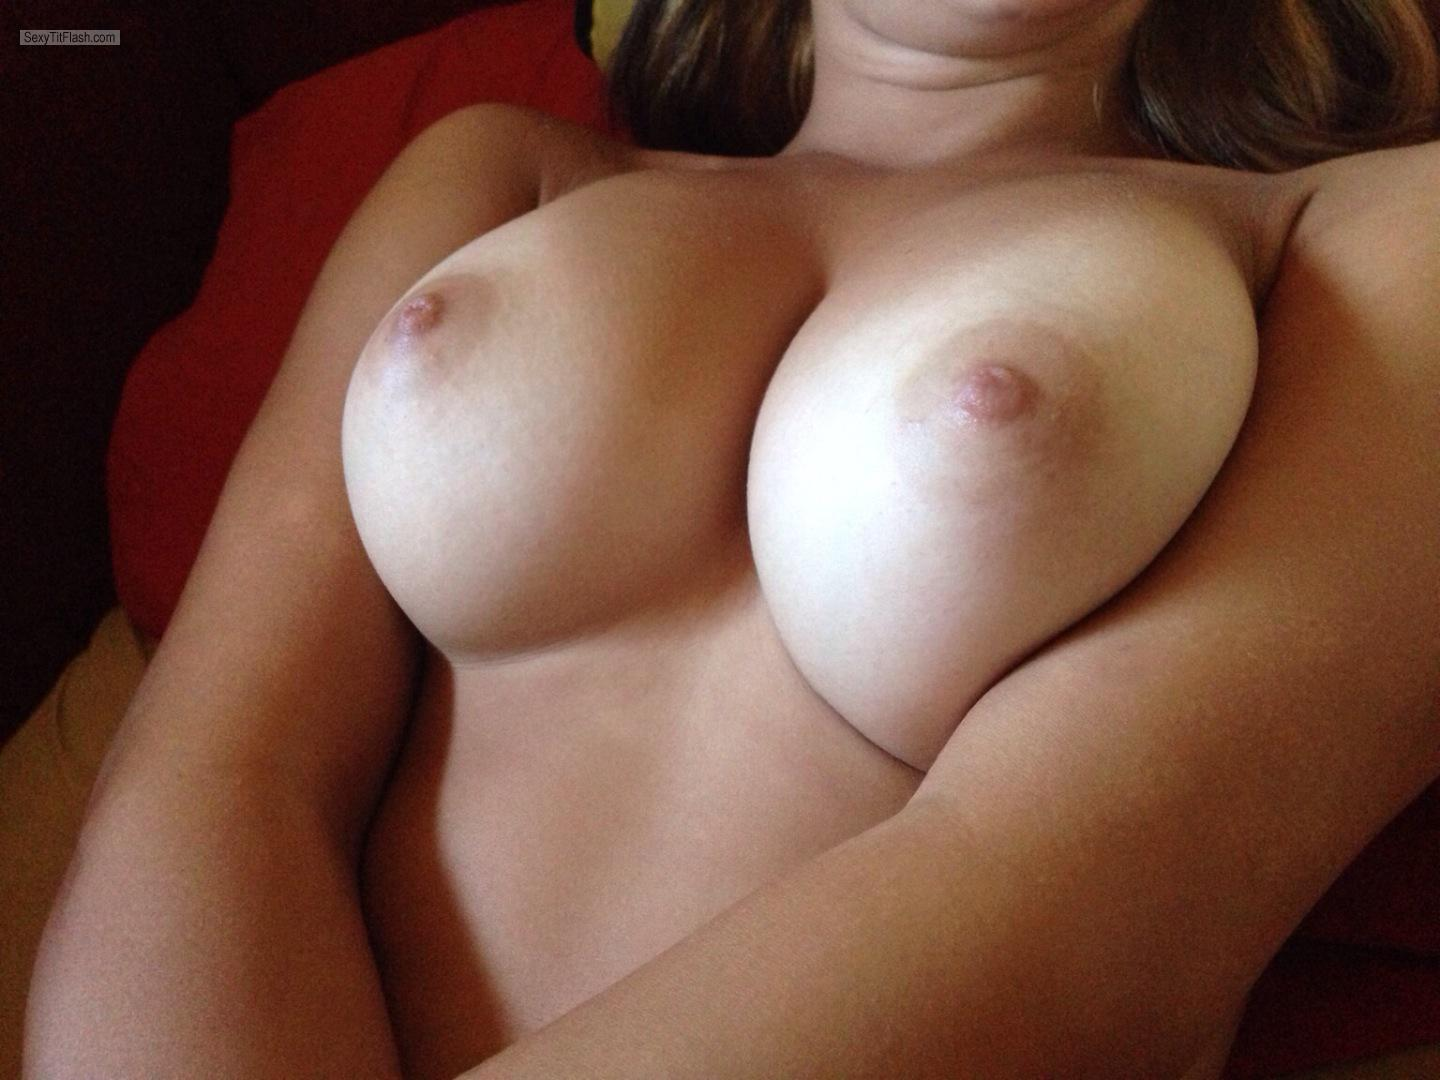 Tit Flash: My Big Tits - Naomi from United Kingdom